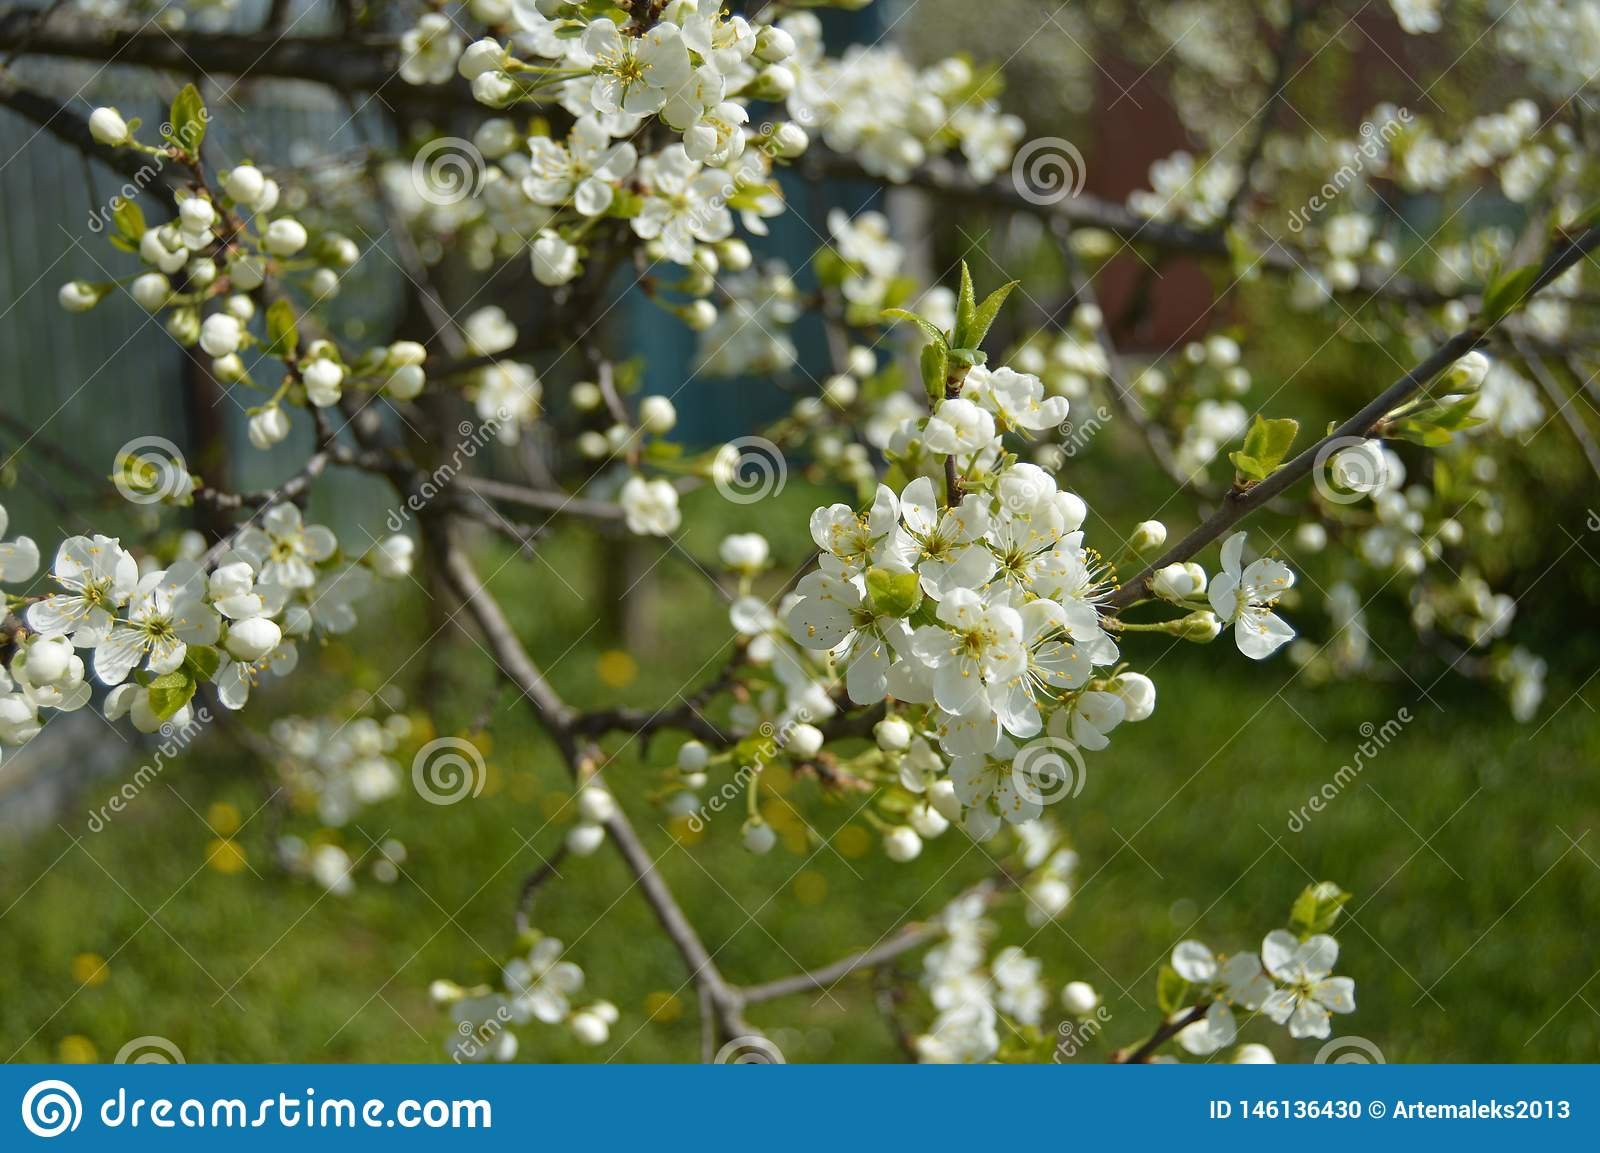 Beautiful blooming apple tree in spring garden